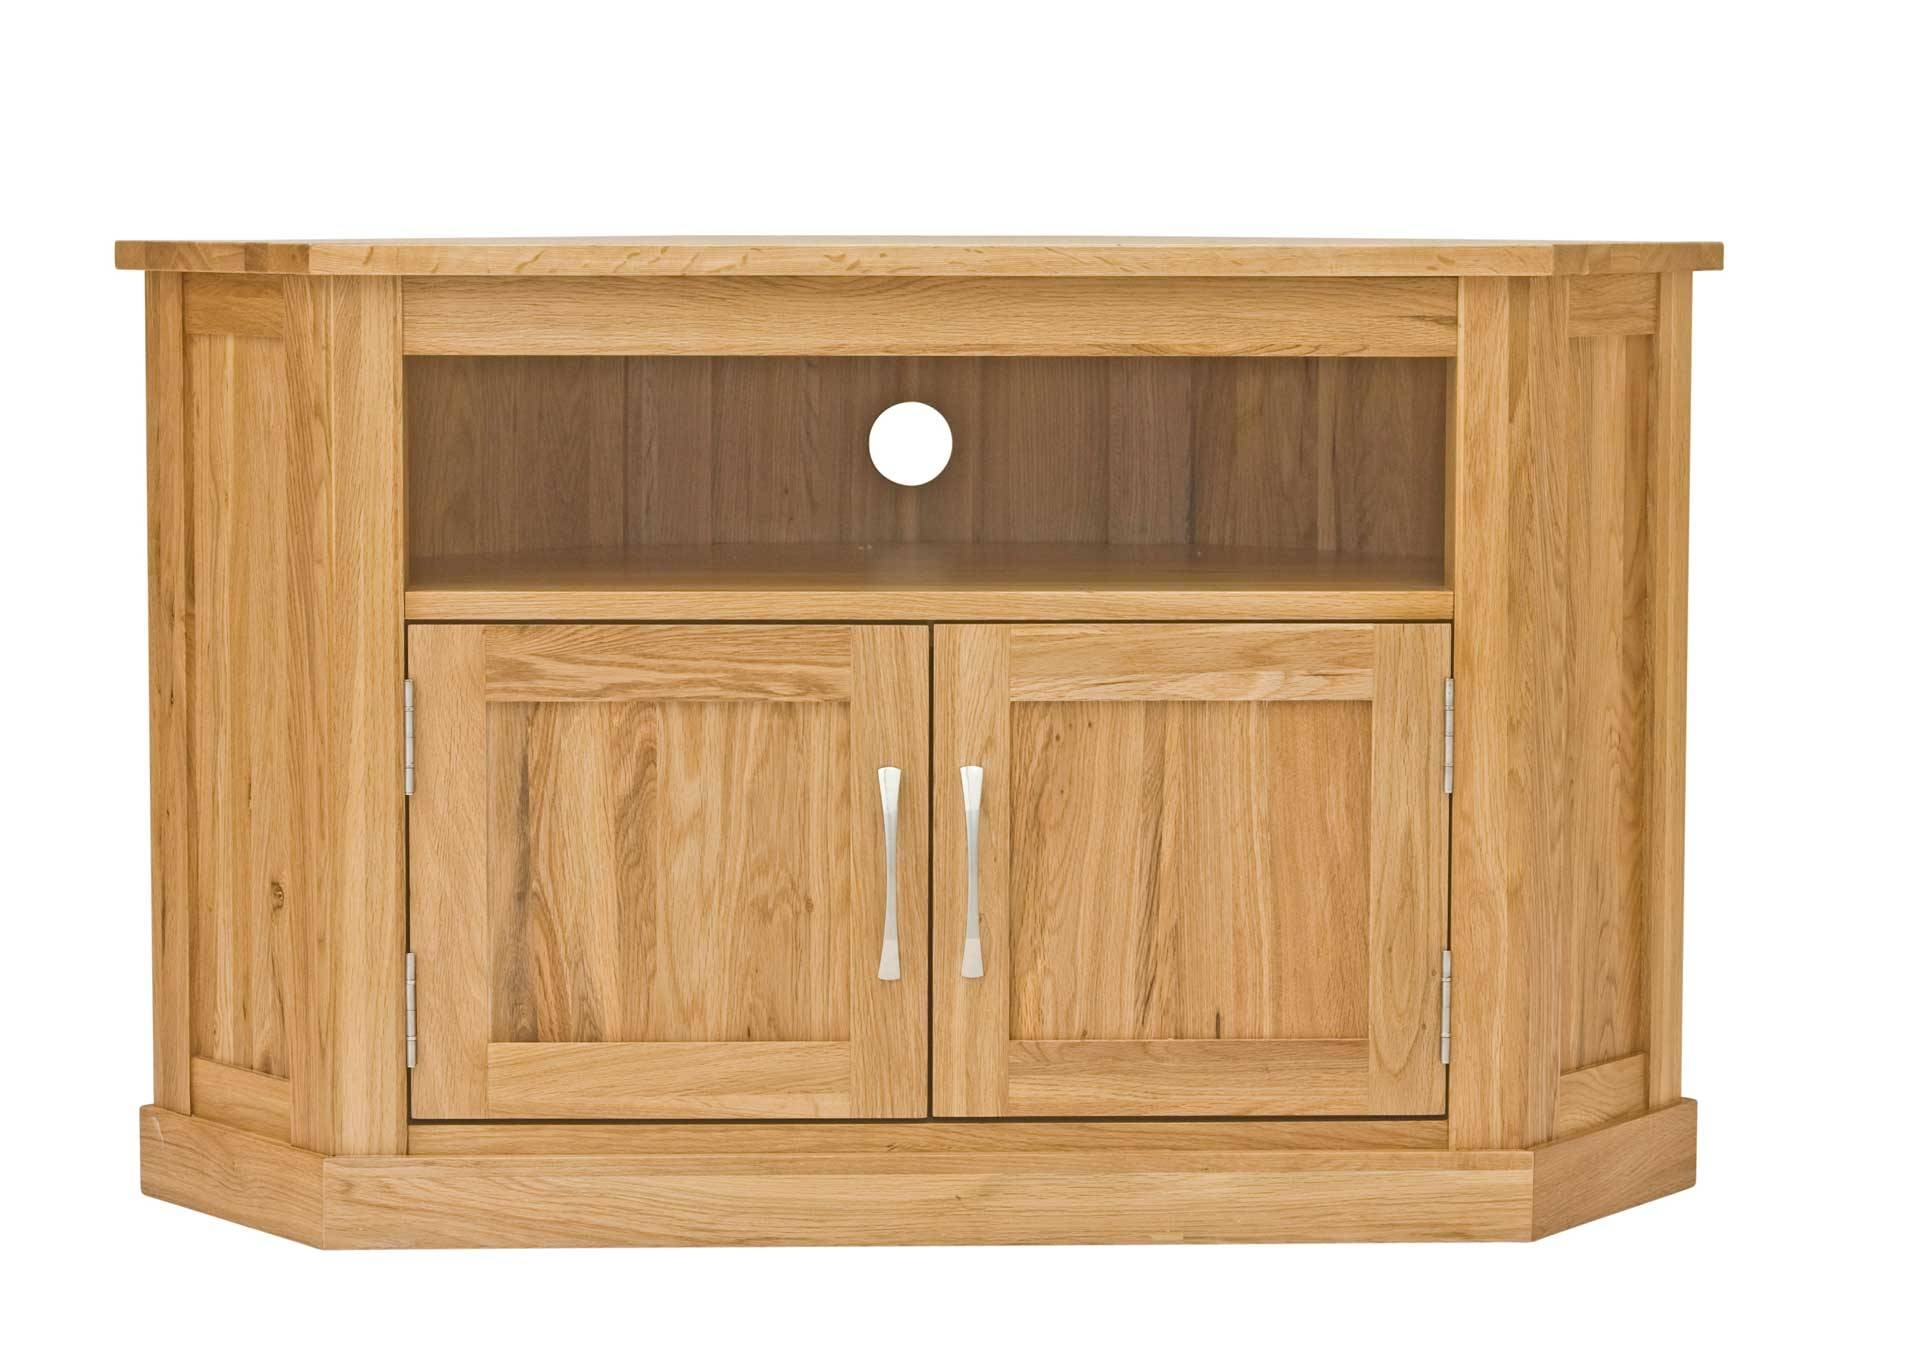 Classic Oak Corner Television Cabinet | Hampshire Furniture throughout Wooden Corner Tv Cabinets (Image 1 of 15)